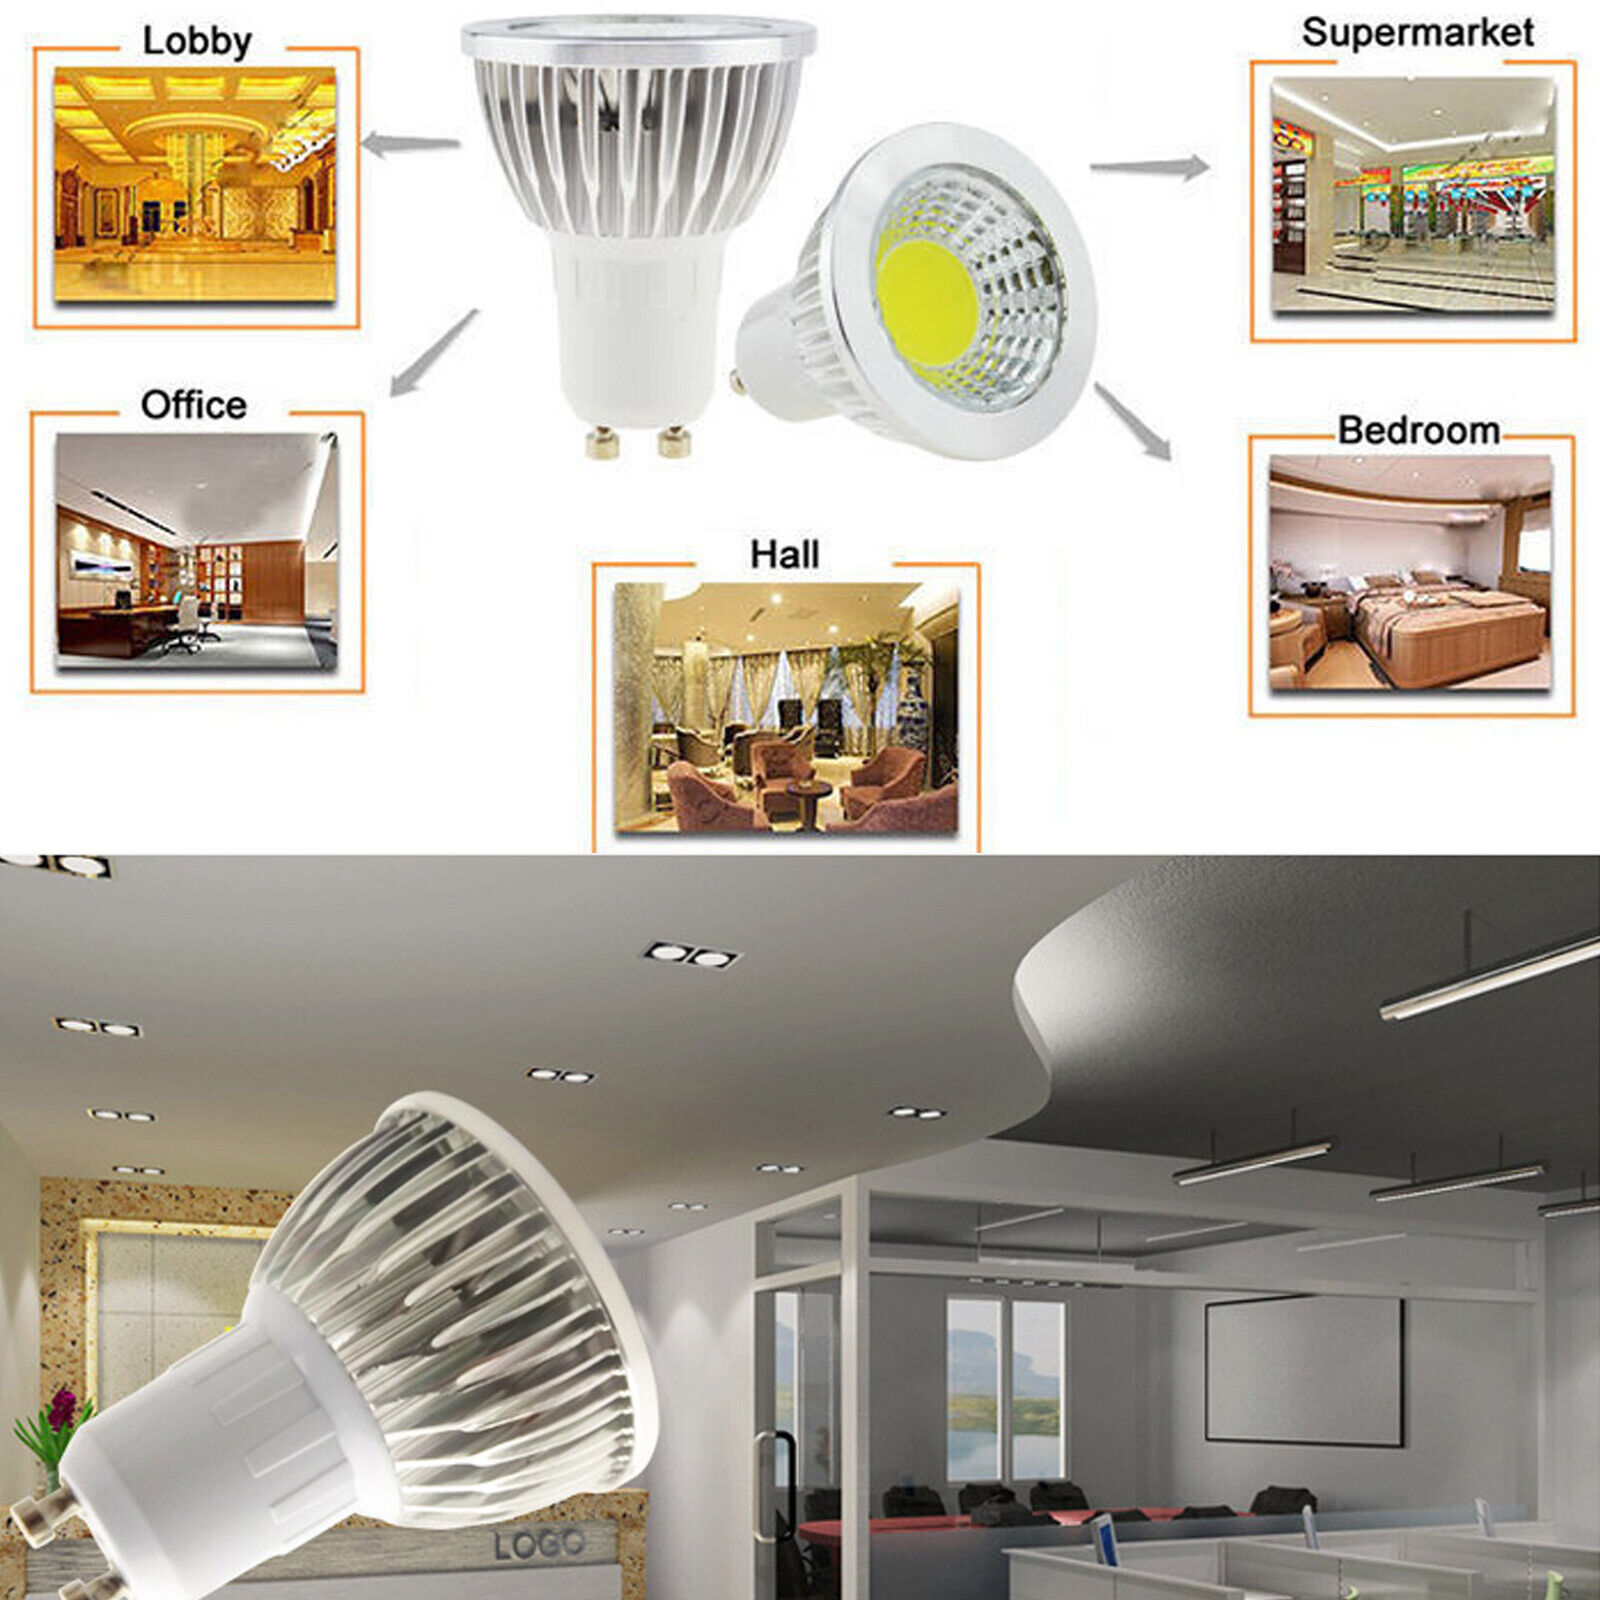 Ultra Bright Mr16 Gu10 E27 E14 Dimmable 6w 9w 12w Led Cob Spot Light Bulbs Cree Dimmable Led Cob Spot Light Bulbs Gu10 Mr16 E27 E14 12w 9w